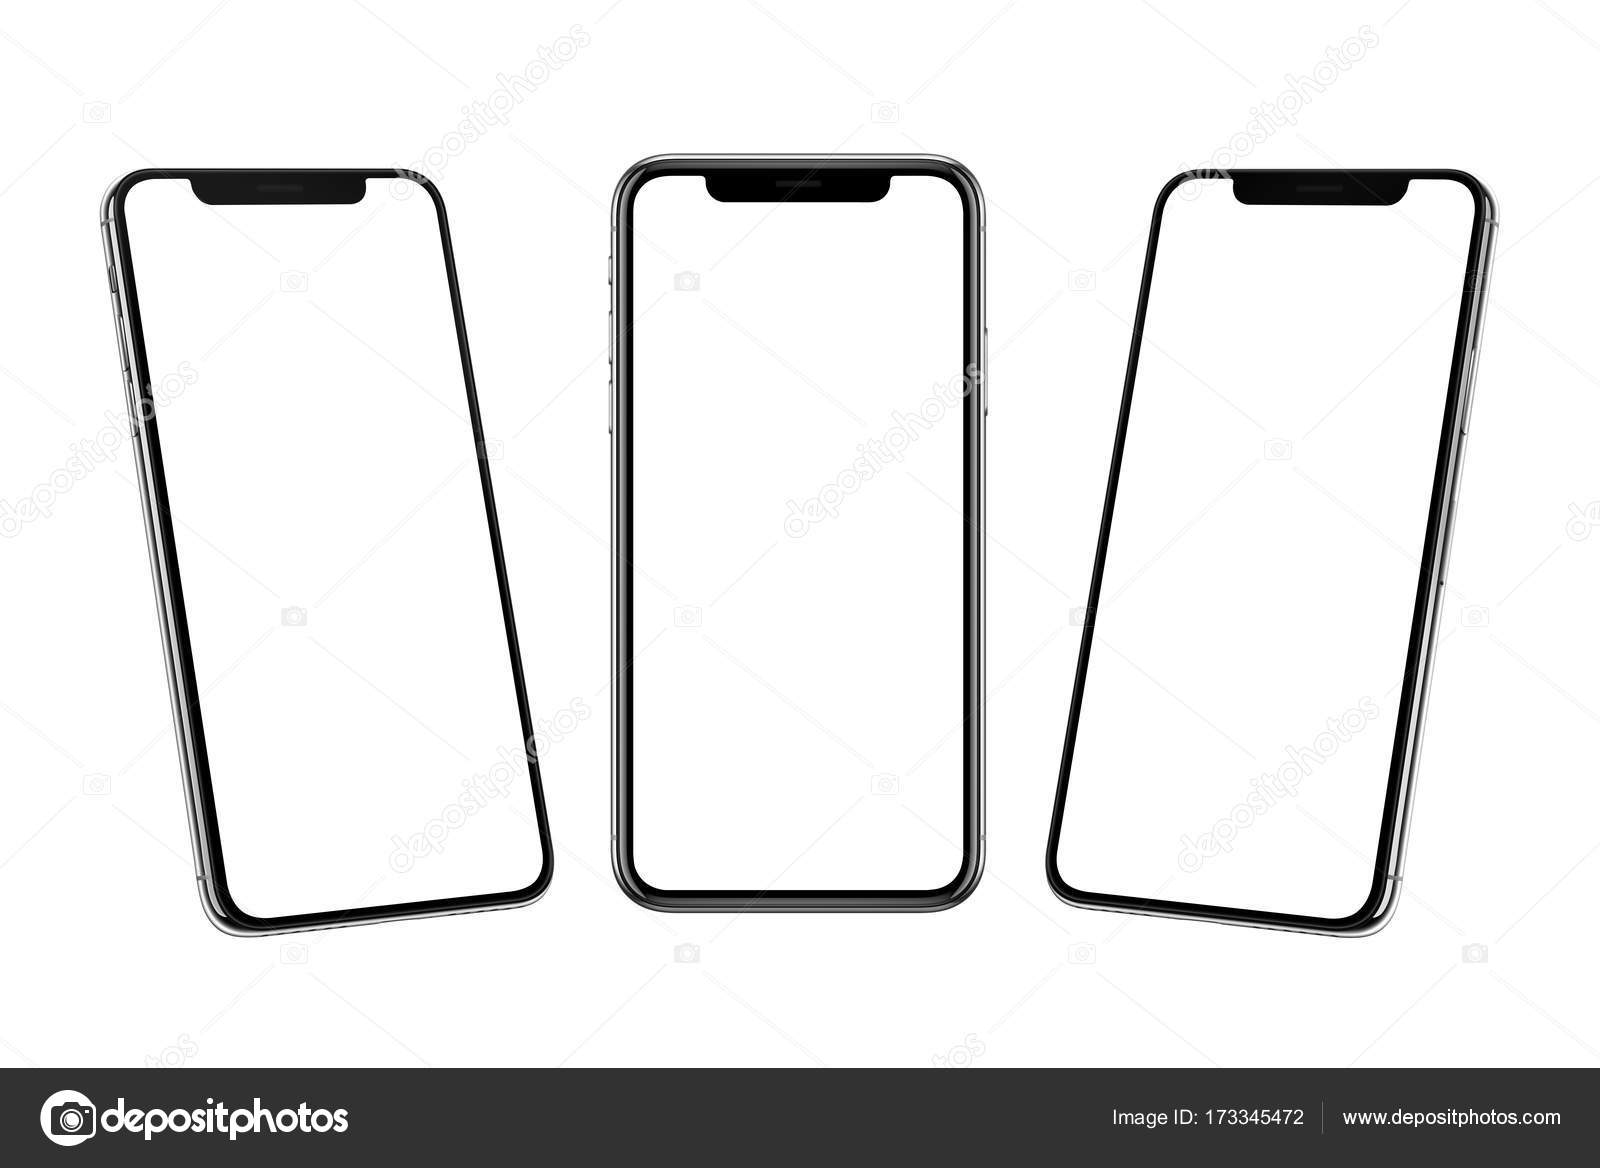 multiple smart phones with x curved screen in front left and right